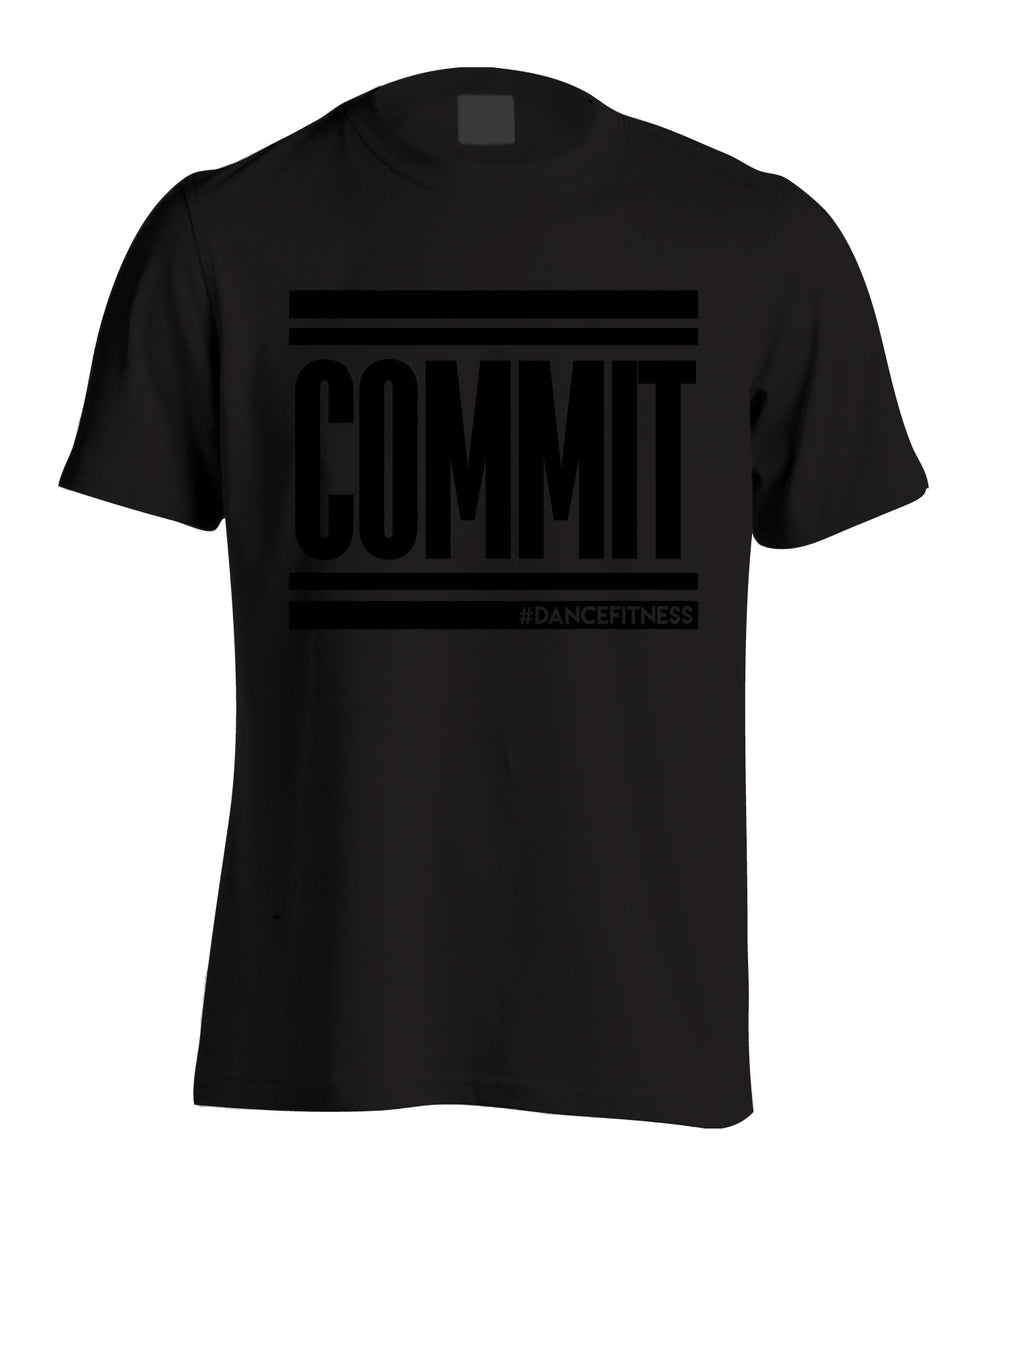 COMMIT Tee - Black w/ Black Print